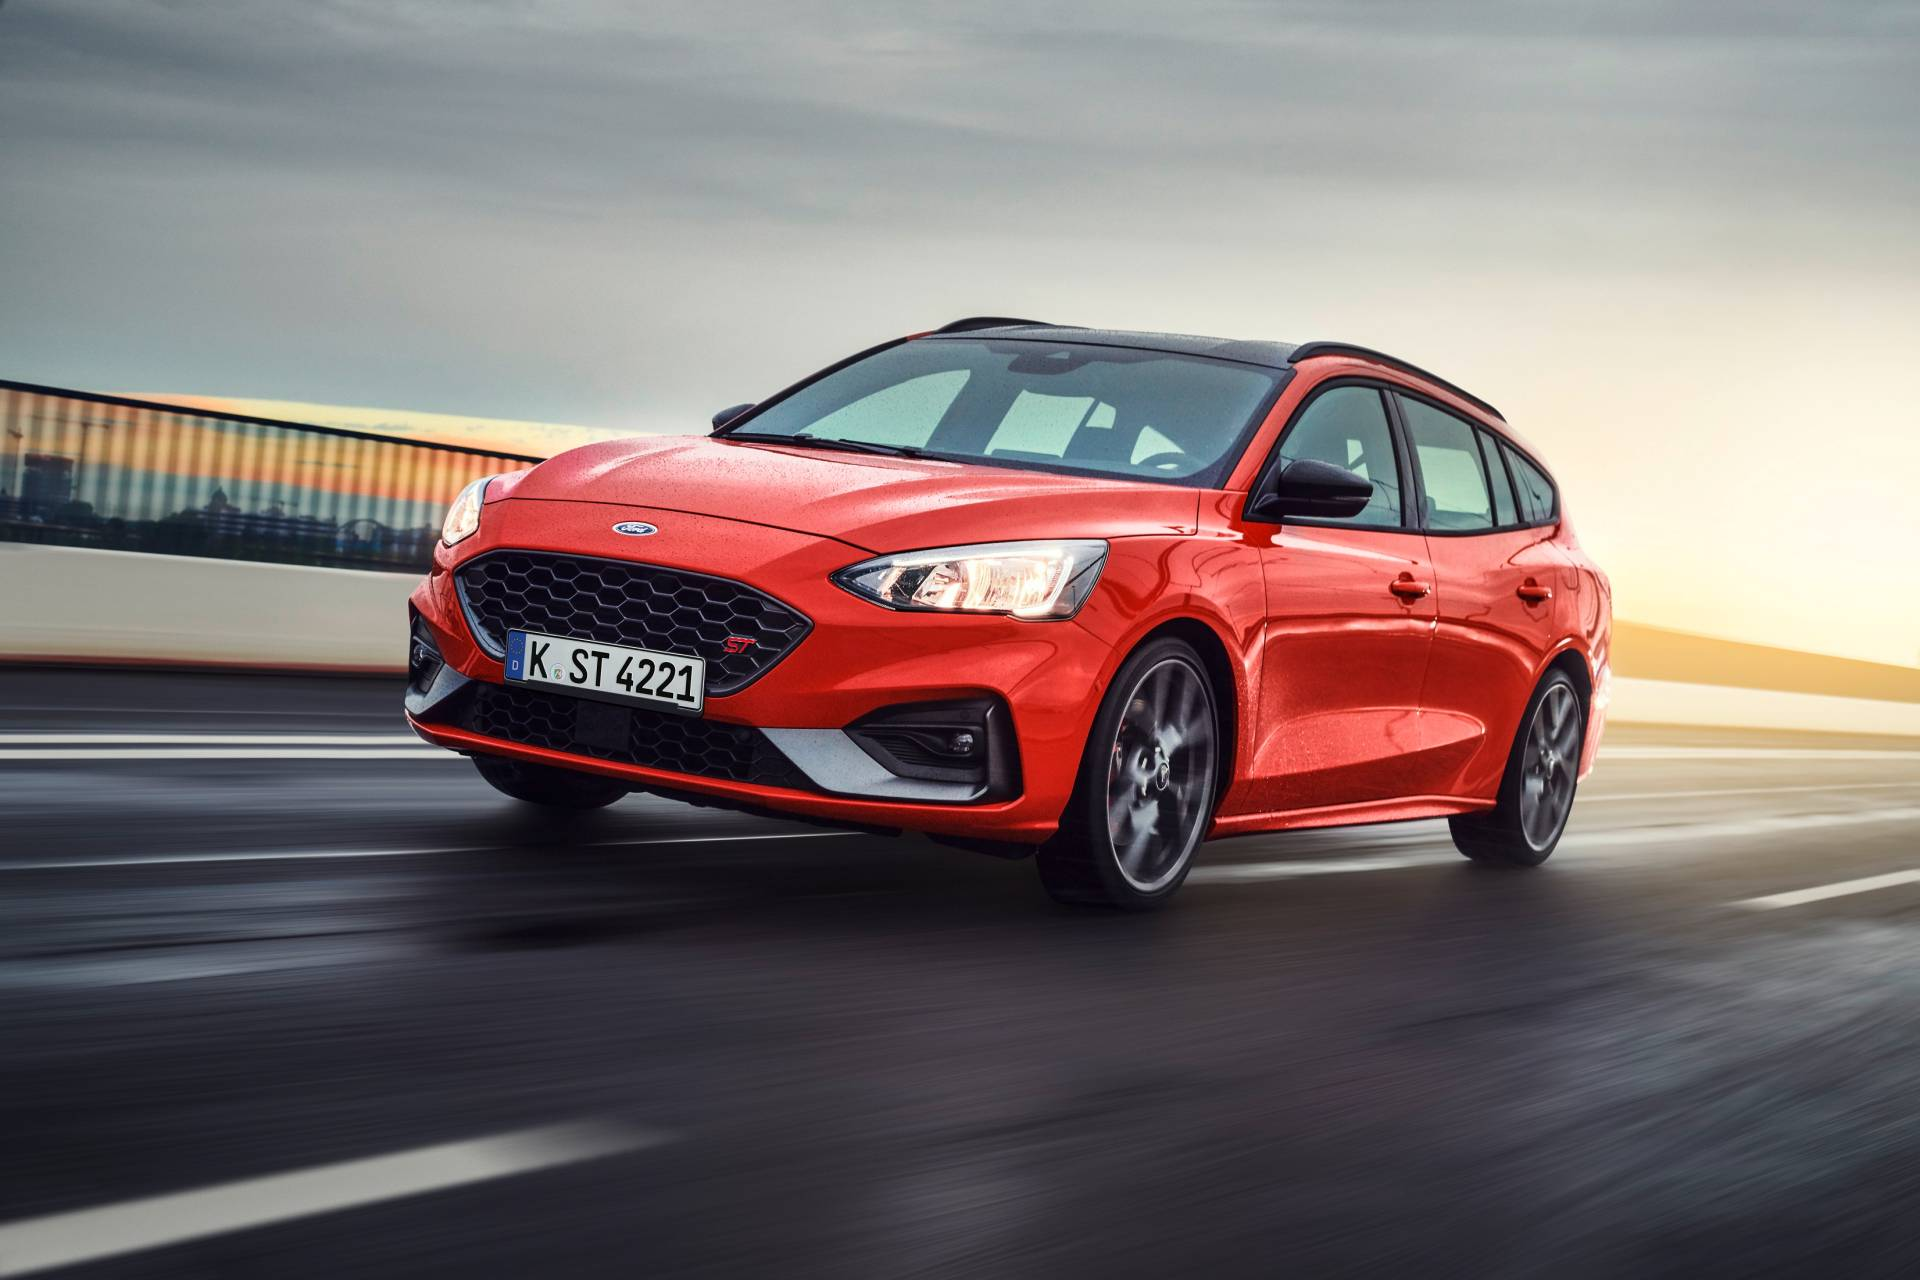 2019 Ford Focus ST Wagon Introduced With EcoBlue, EcoBoost ...